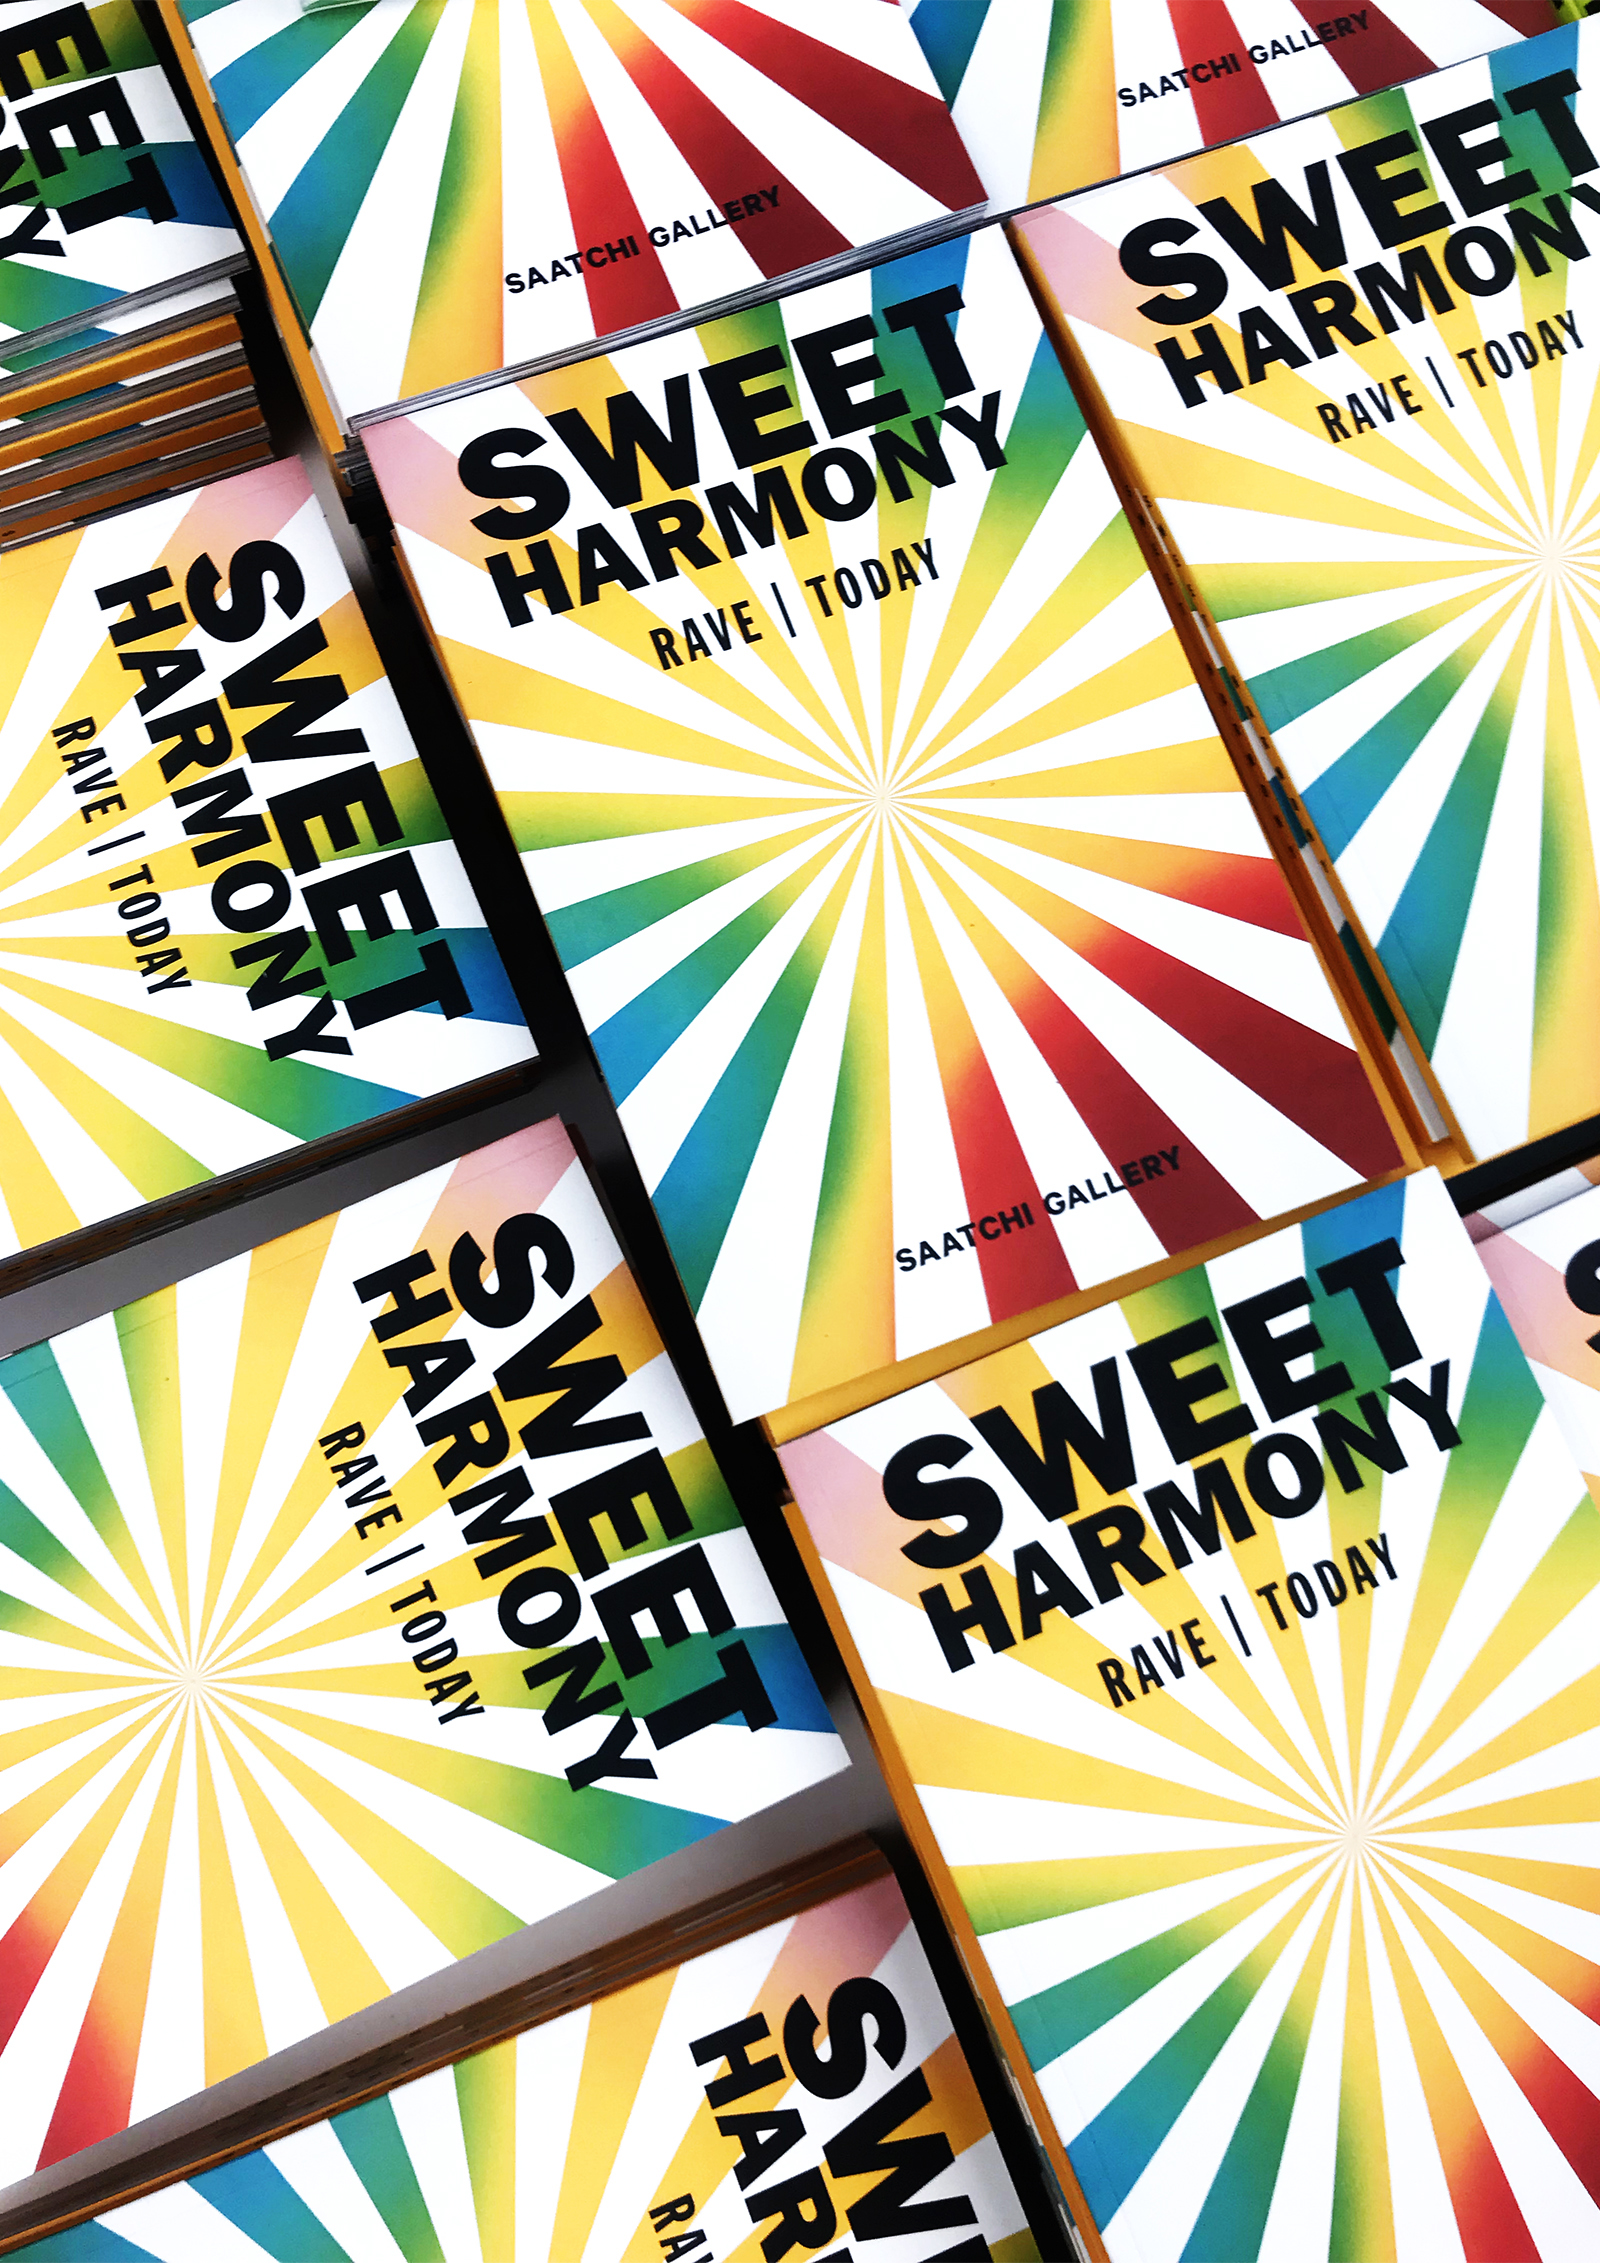 Sweet-Harmony-Saatchi-Gallery-Rave-Today-Book-Shop-James-Lee-Duffy.jpg